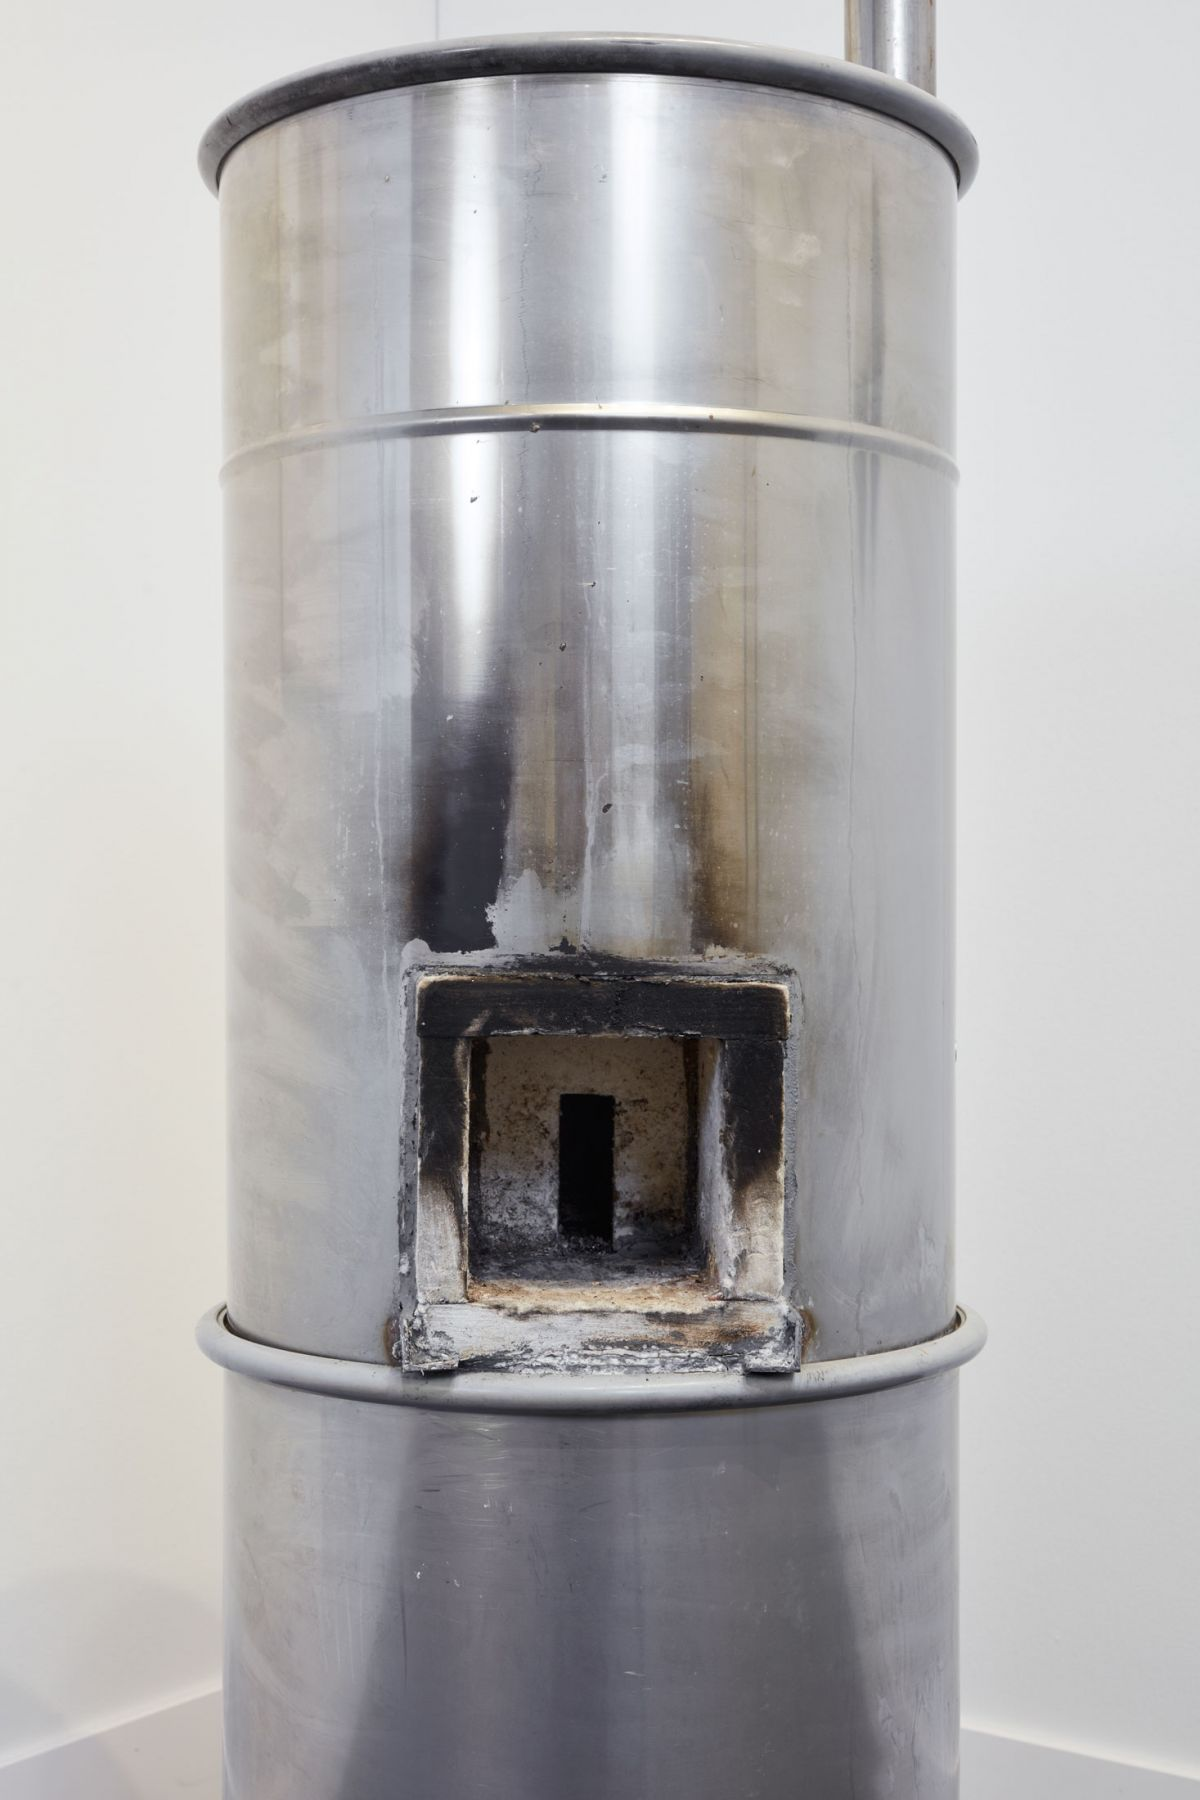 Oscar Tuazon Rocket Stove (Camp Turtle Island), 2019